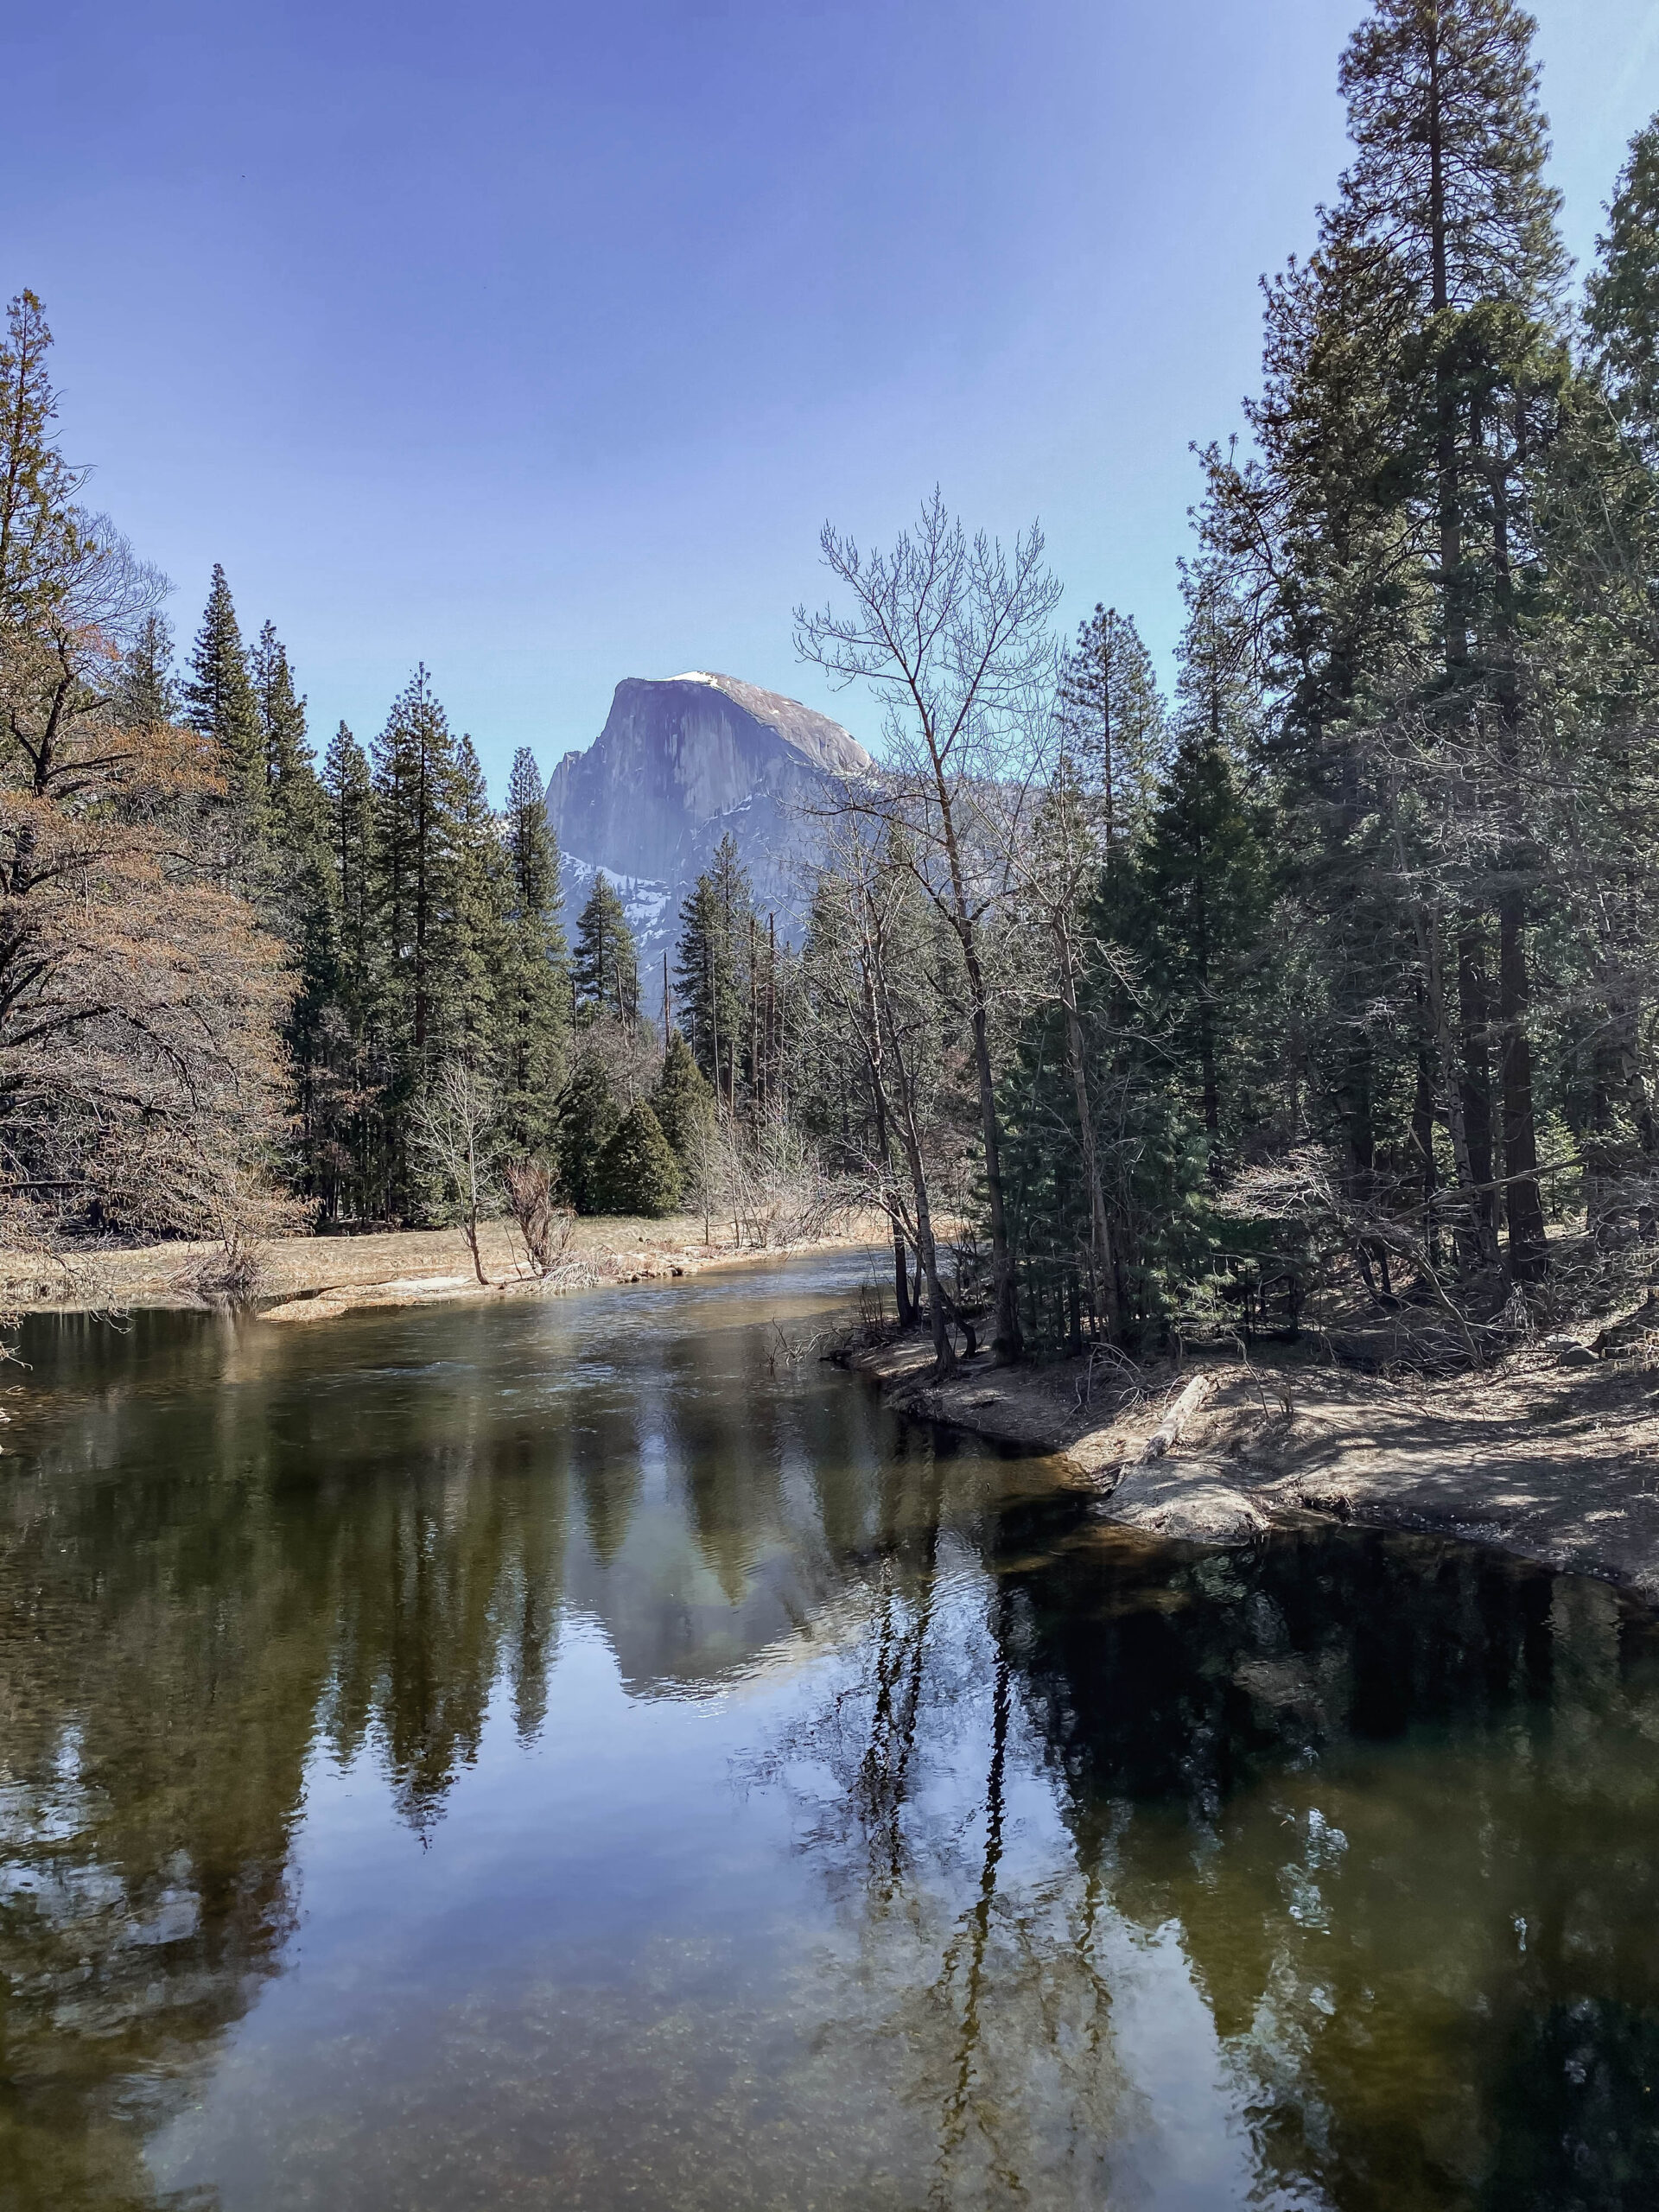 Visiting Bass Lake and Yosemite? This is a full family travel guide!